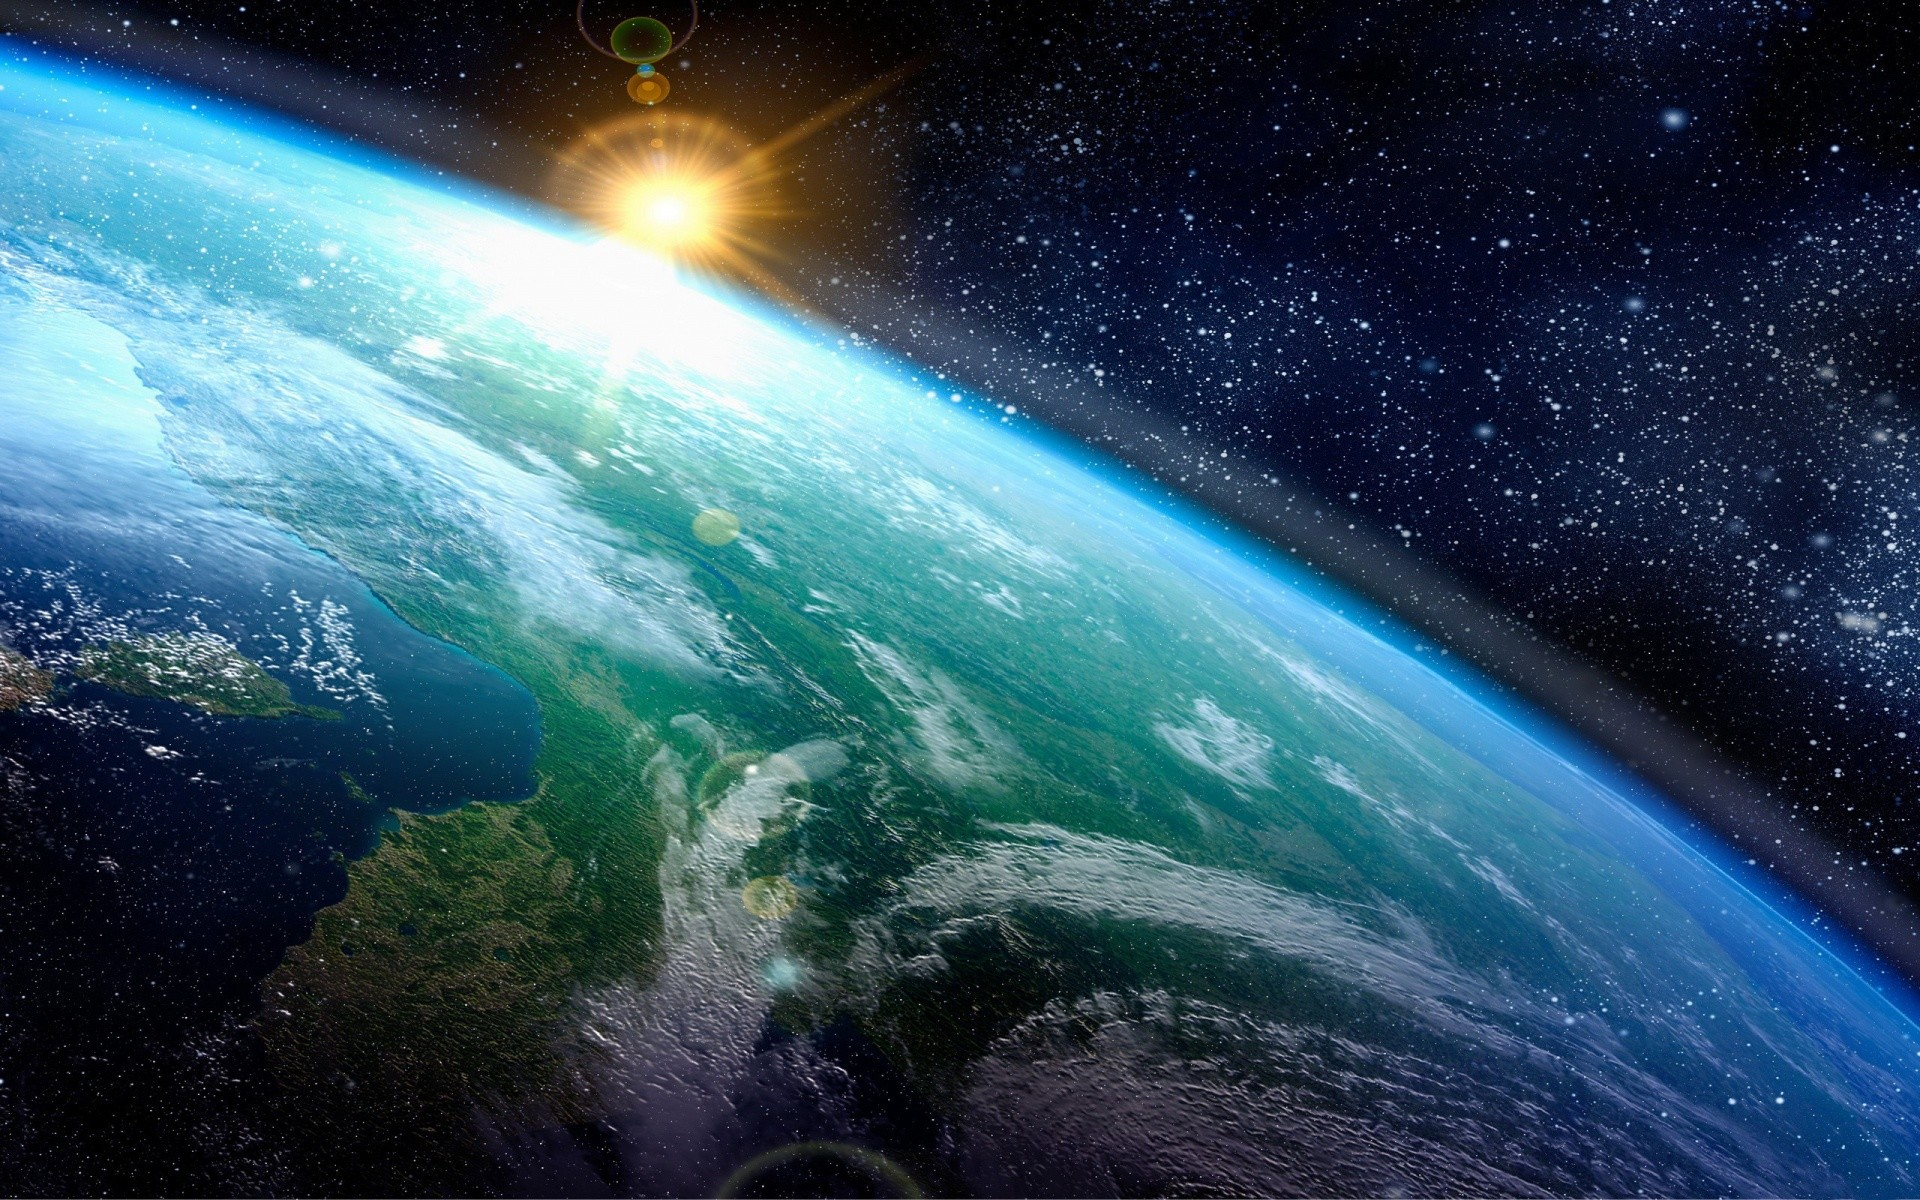 earth wallpaper high resolution (54+ images)